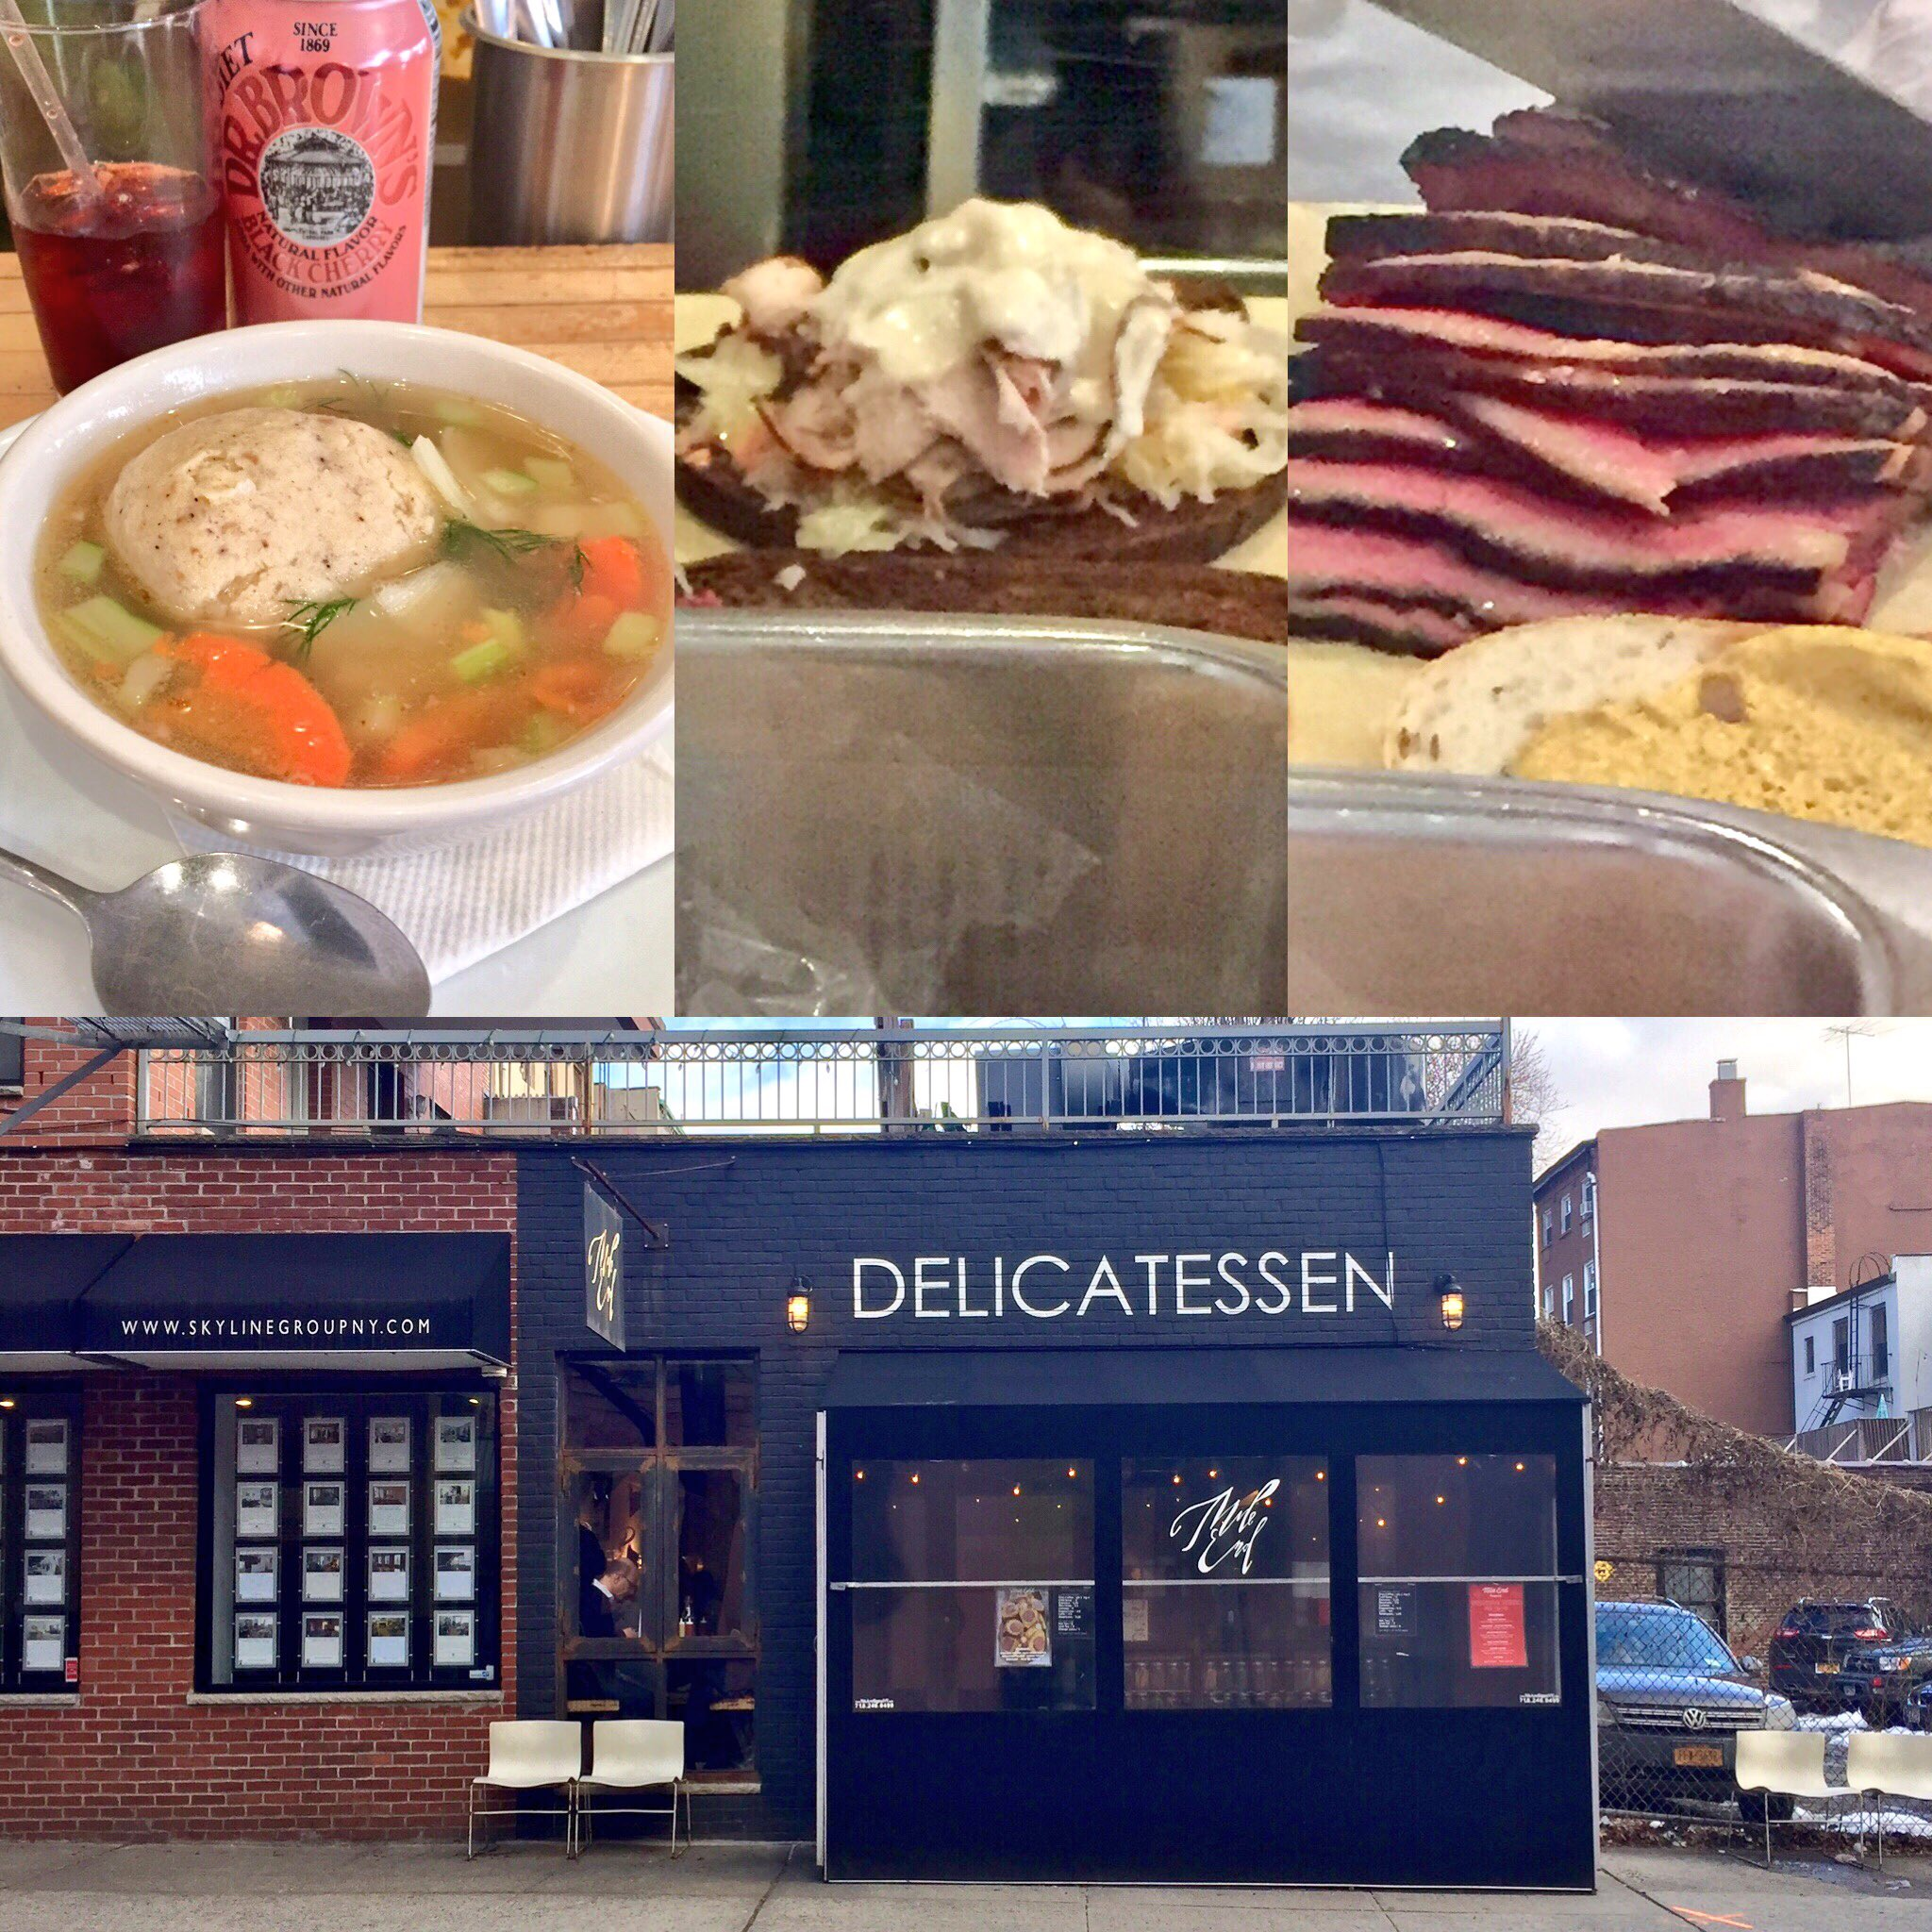 Mile End Deli: combining Jewish deli with Canadian cuisine